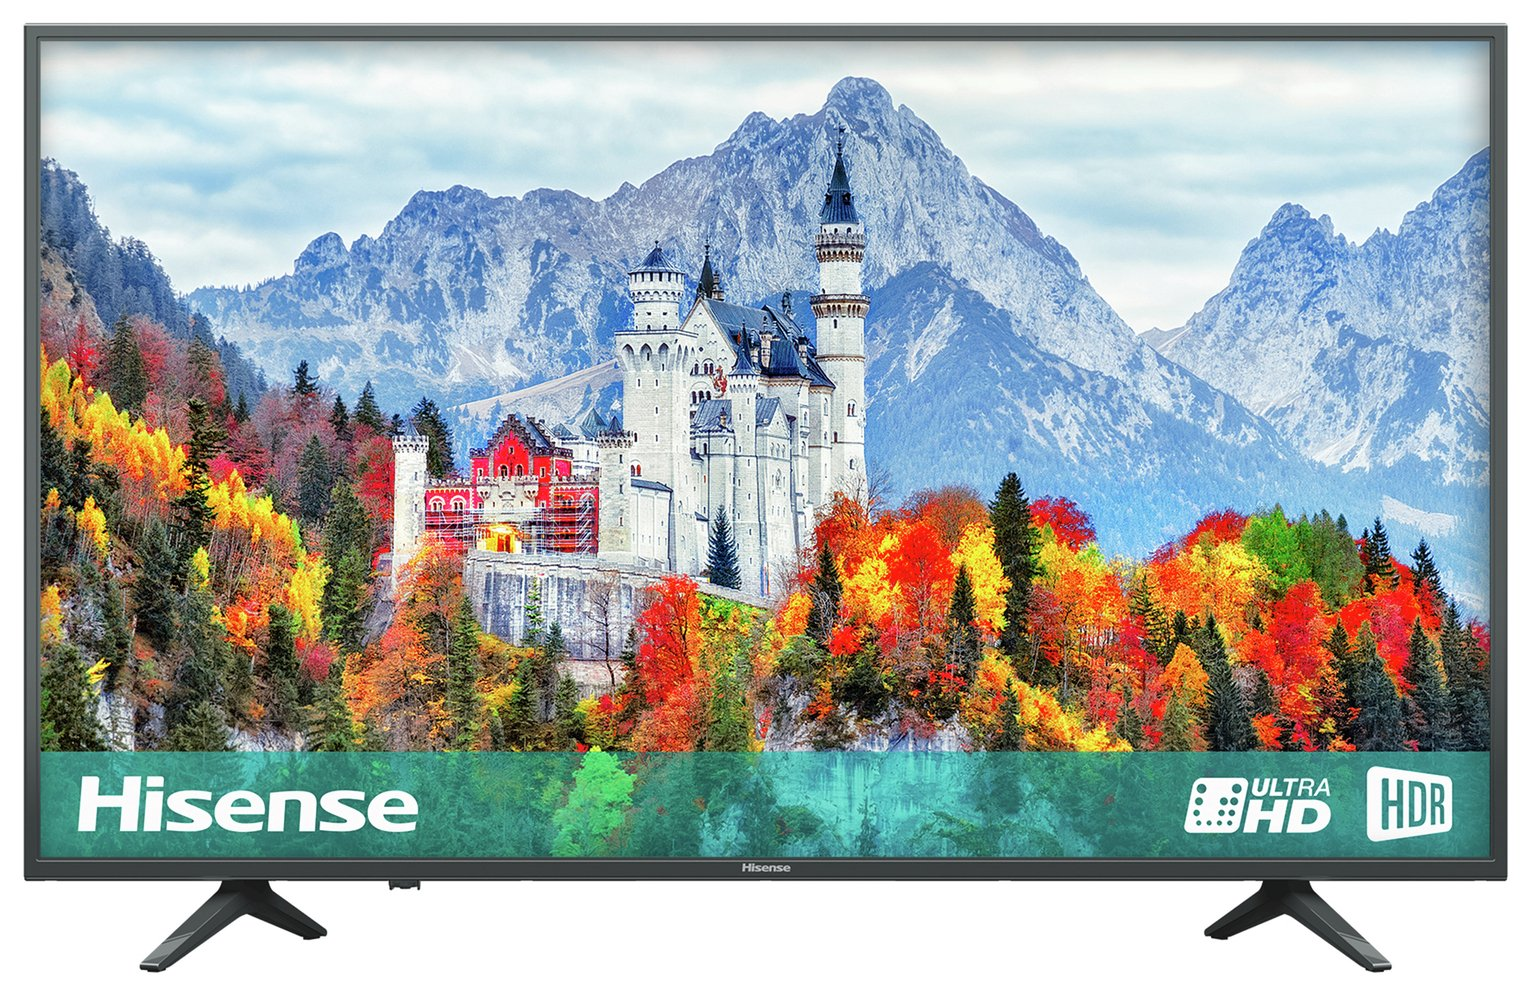 Hisense 50 Inch H50A6250UK Smart 4K HDR LED TV